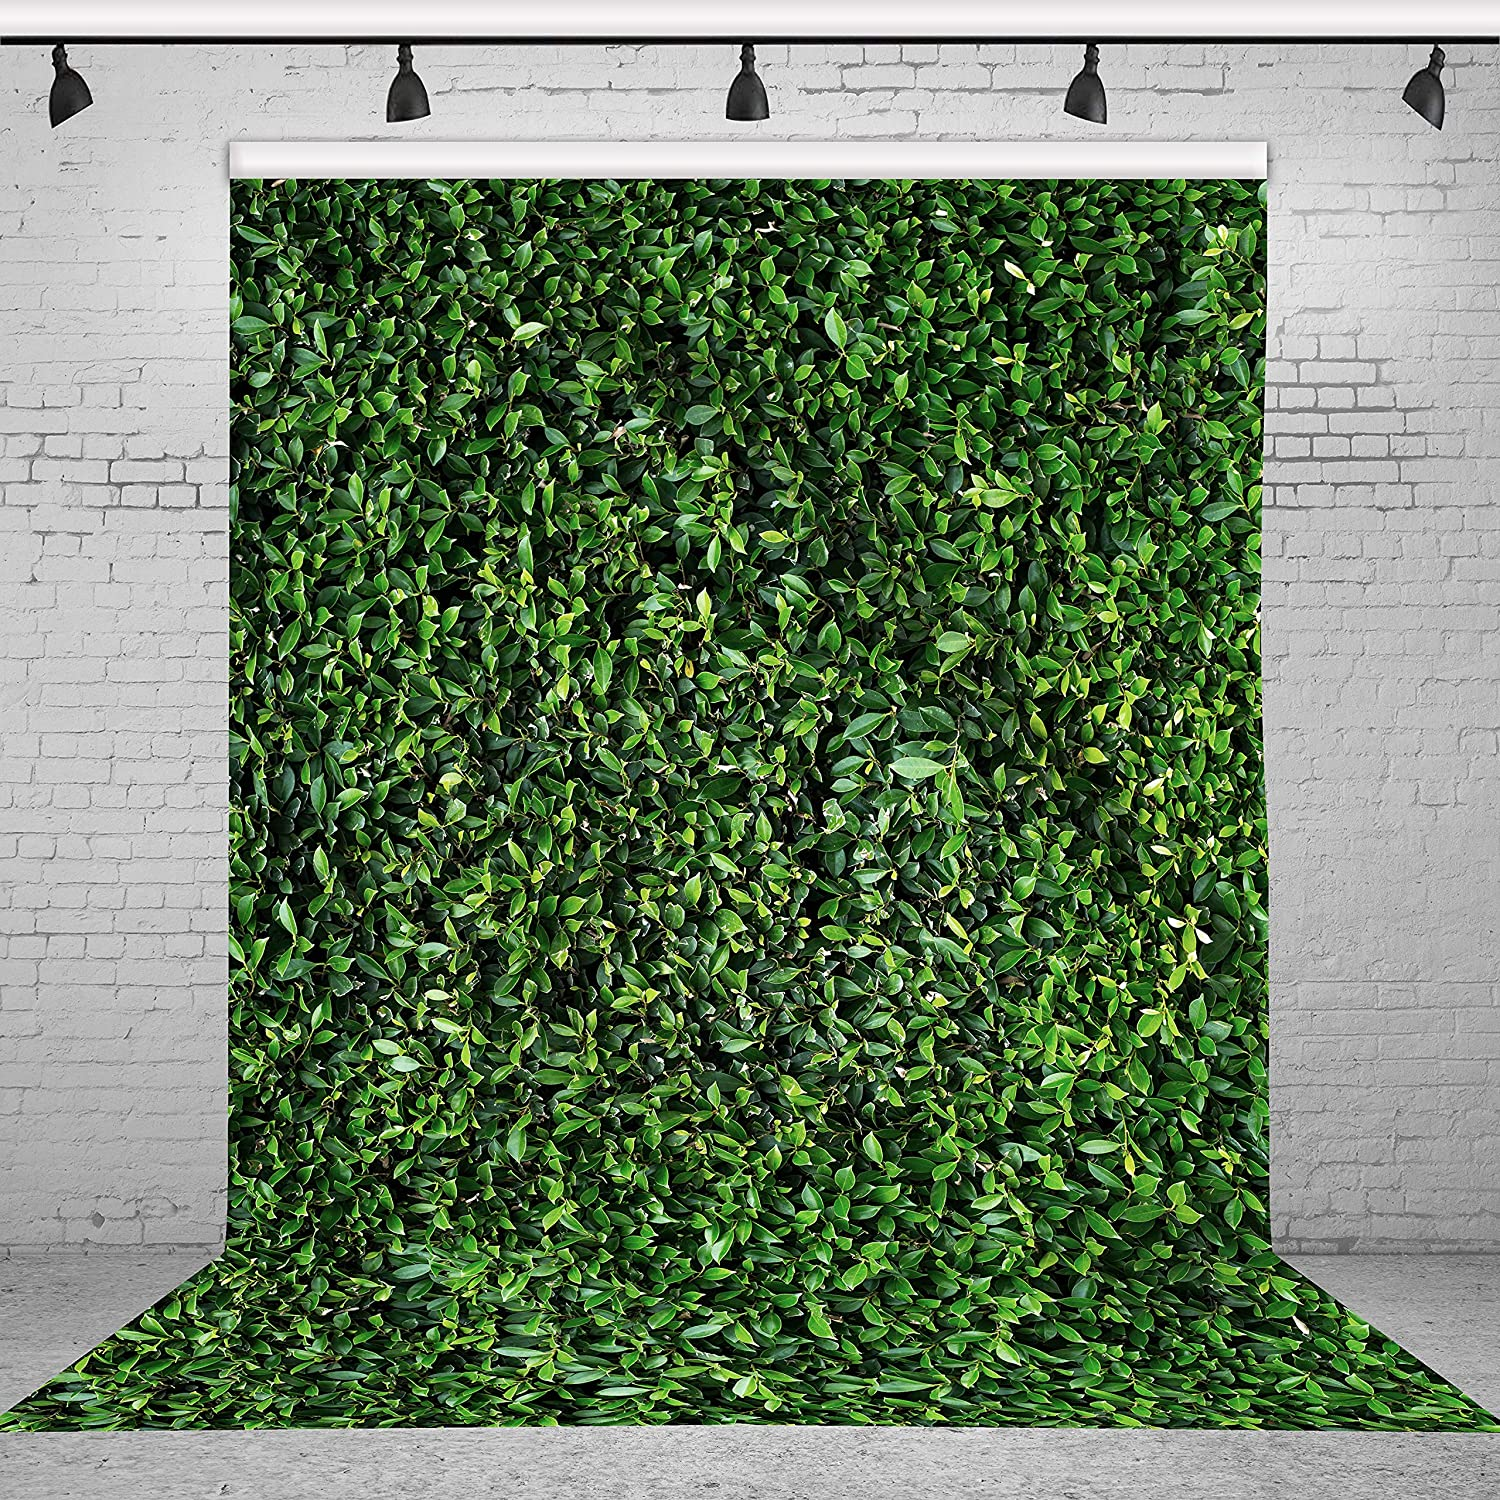 Riyidecor Spring Lawn Backdrop Leaves Grass 5Wx7H Feet Green Natural Outside Birthday Banner Photography Background Baby Artistic Newborn Birthday Party Photo Studio Shoot Backdrop Vinyl